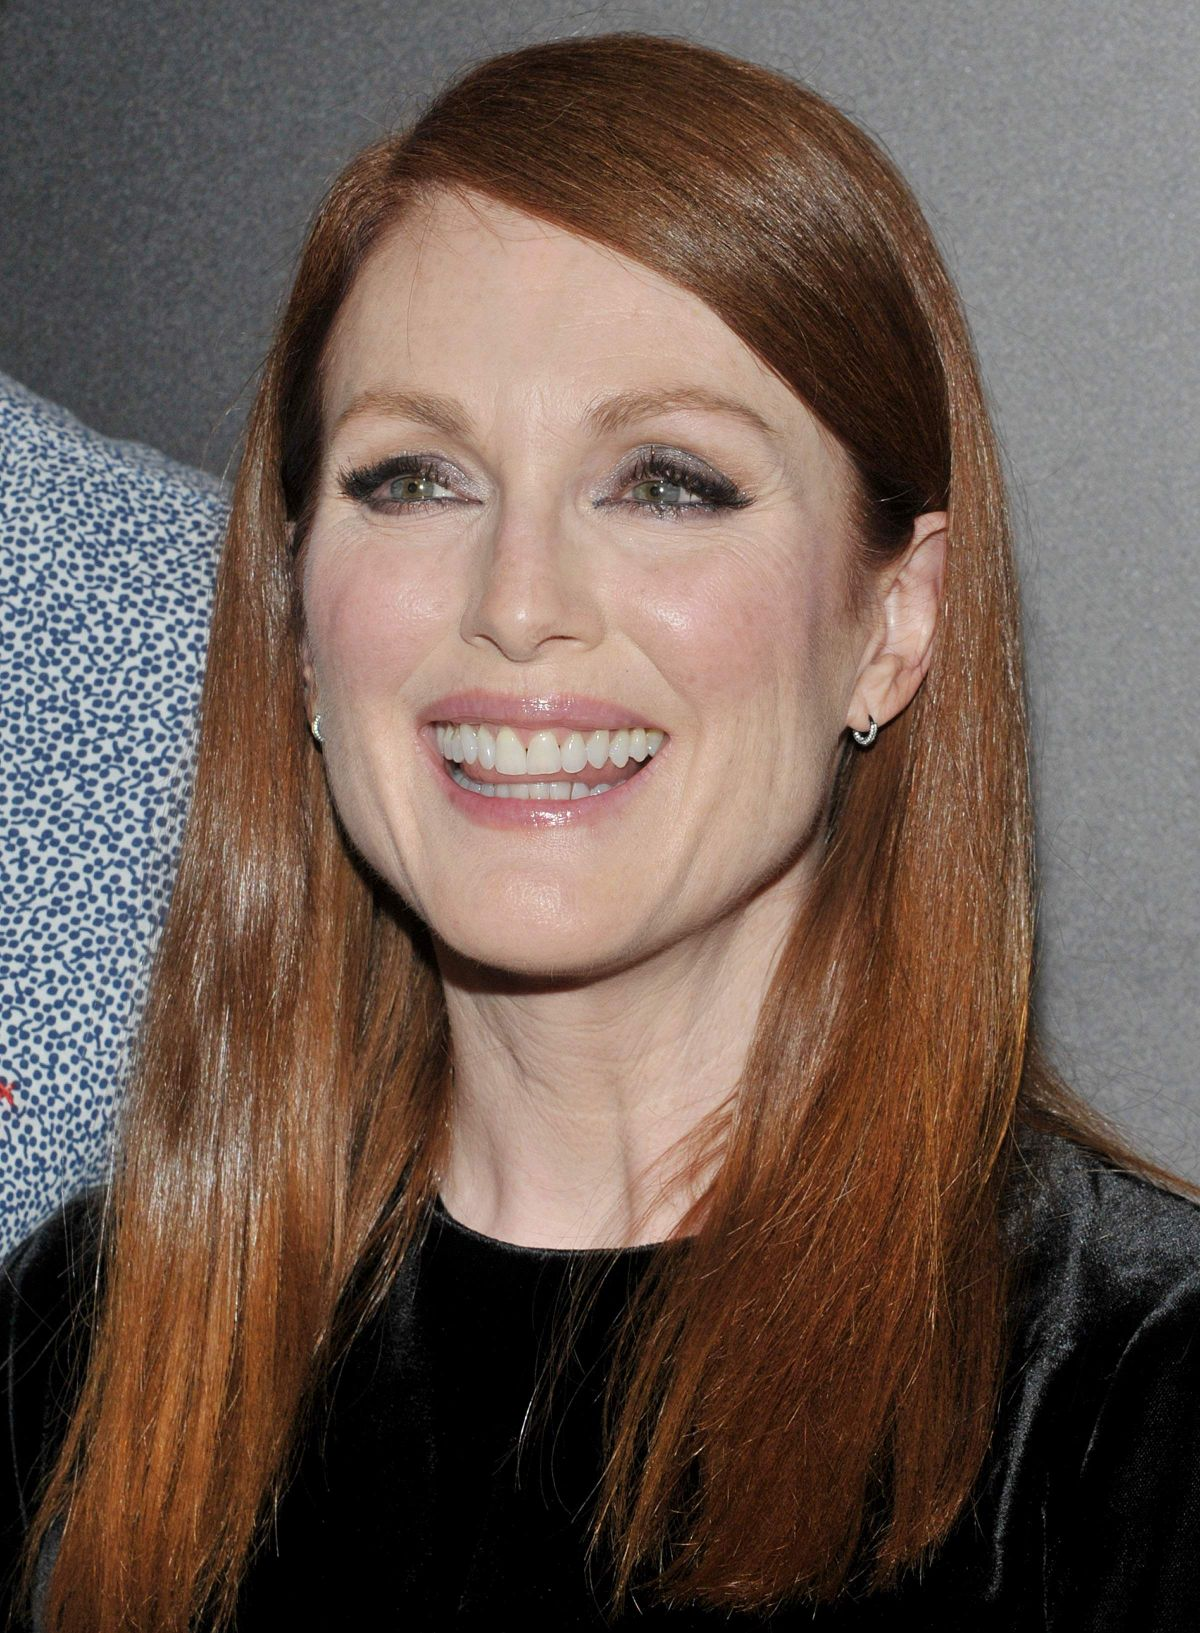 Julianne Moore Her Religion Hobbies And Political Views